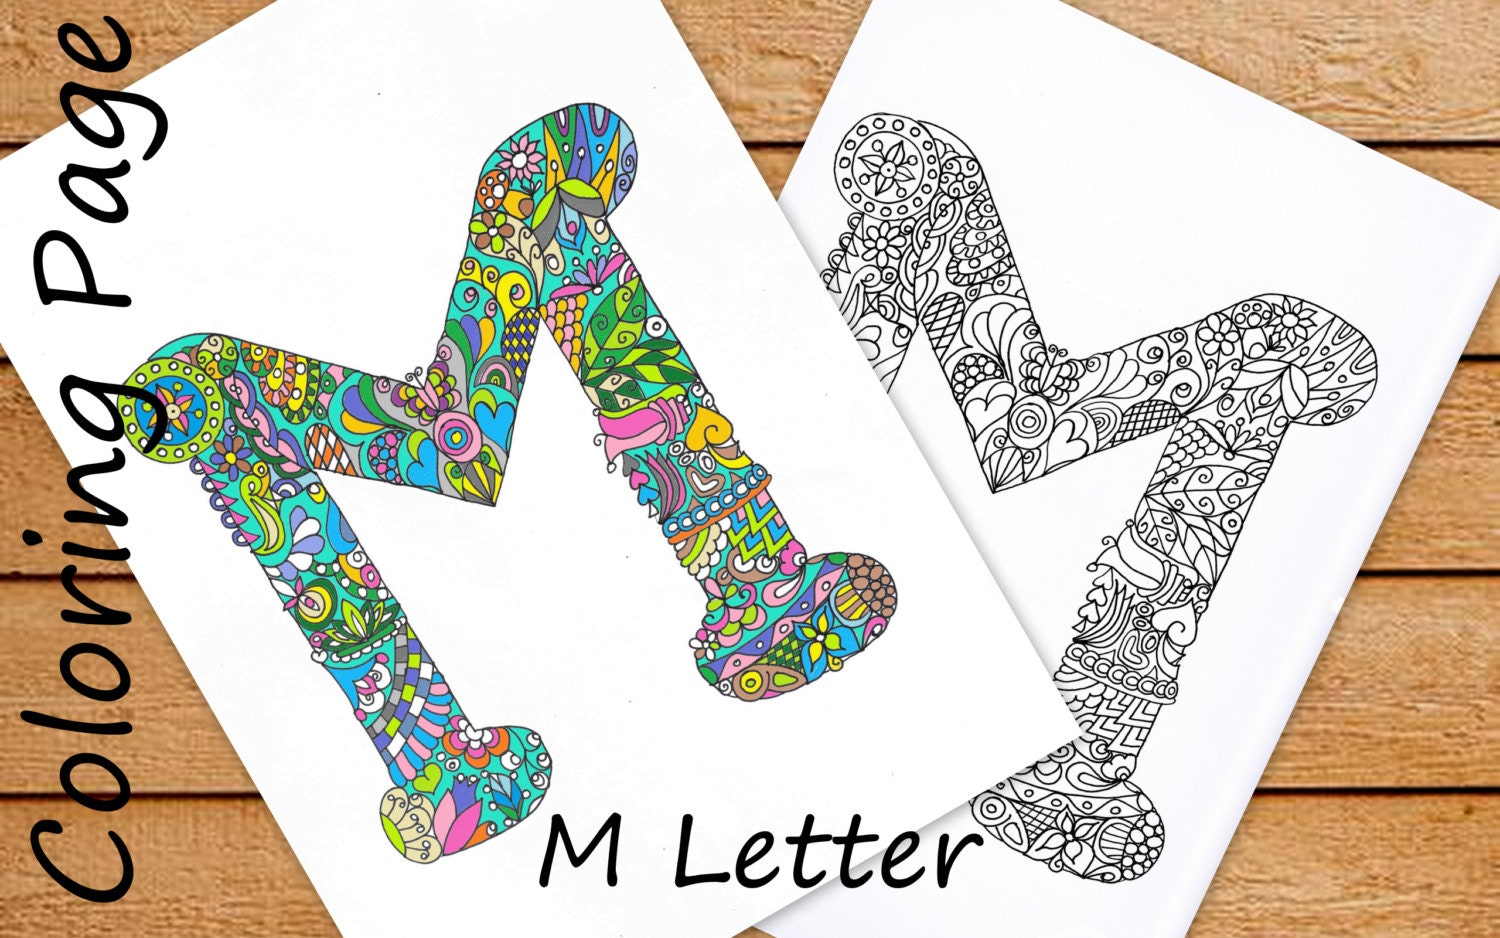 Coloring pictures for adults letters - Letter M Colouring Page Zentangle Art Inspired Adults Coloring Page Coloring Alphabet Letters Embroidery Design Relaxing Activity